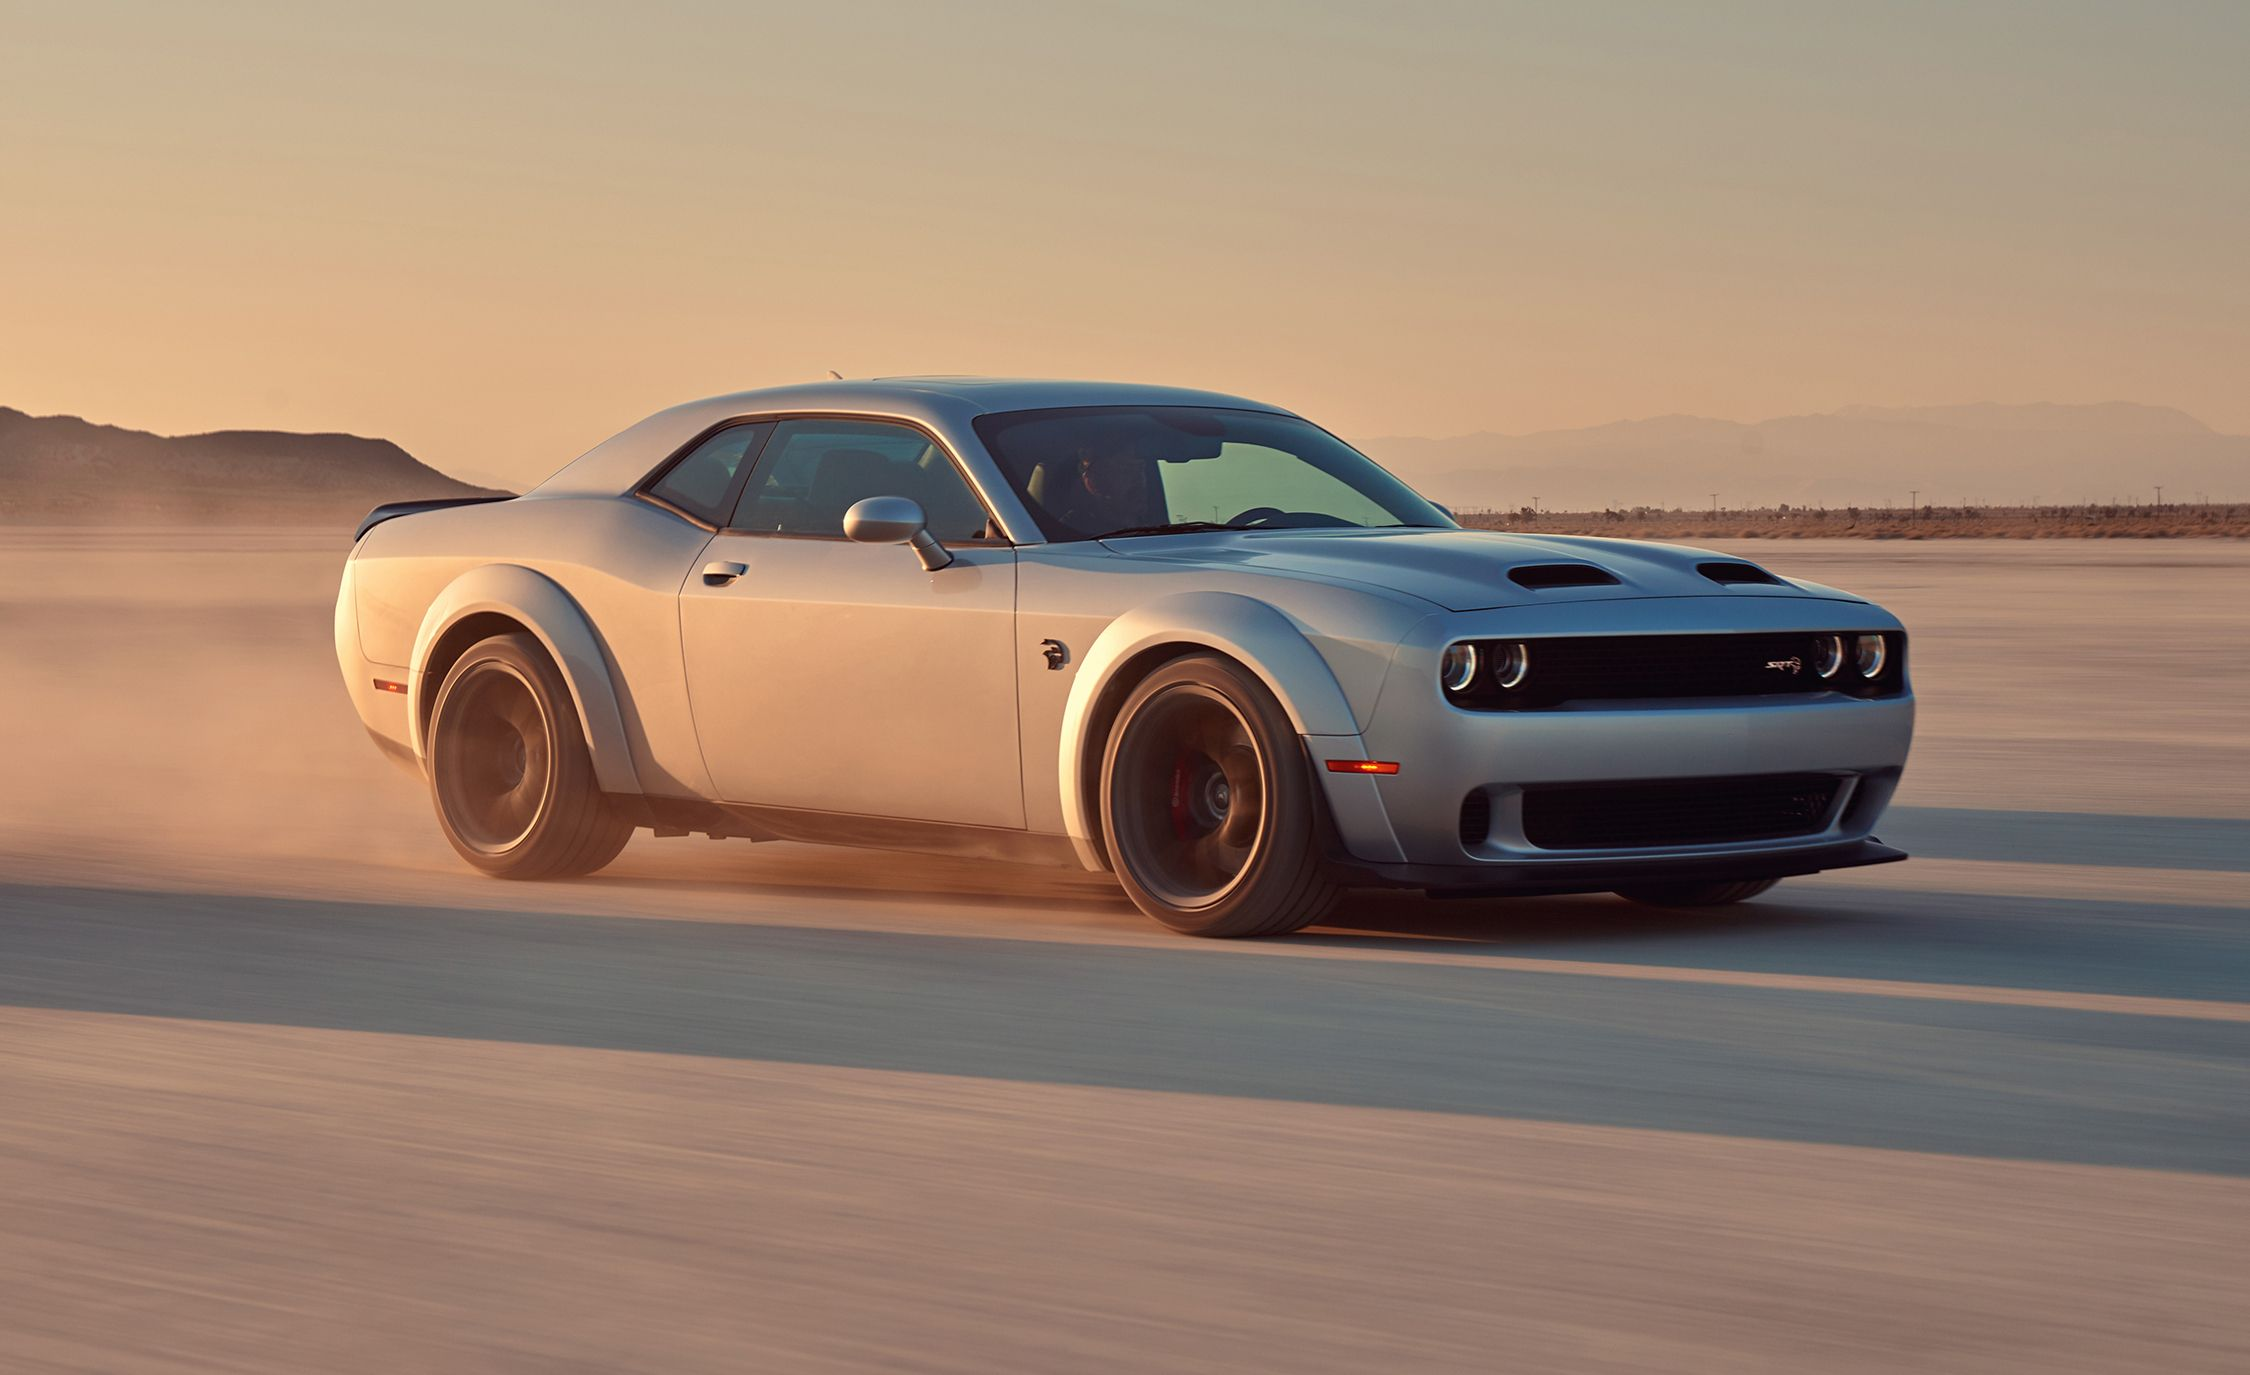 2019 Dodge Challenger Srt Hellcat Srt Hellcat Redeye Photos And